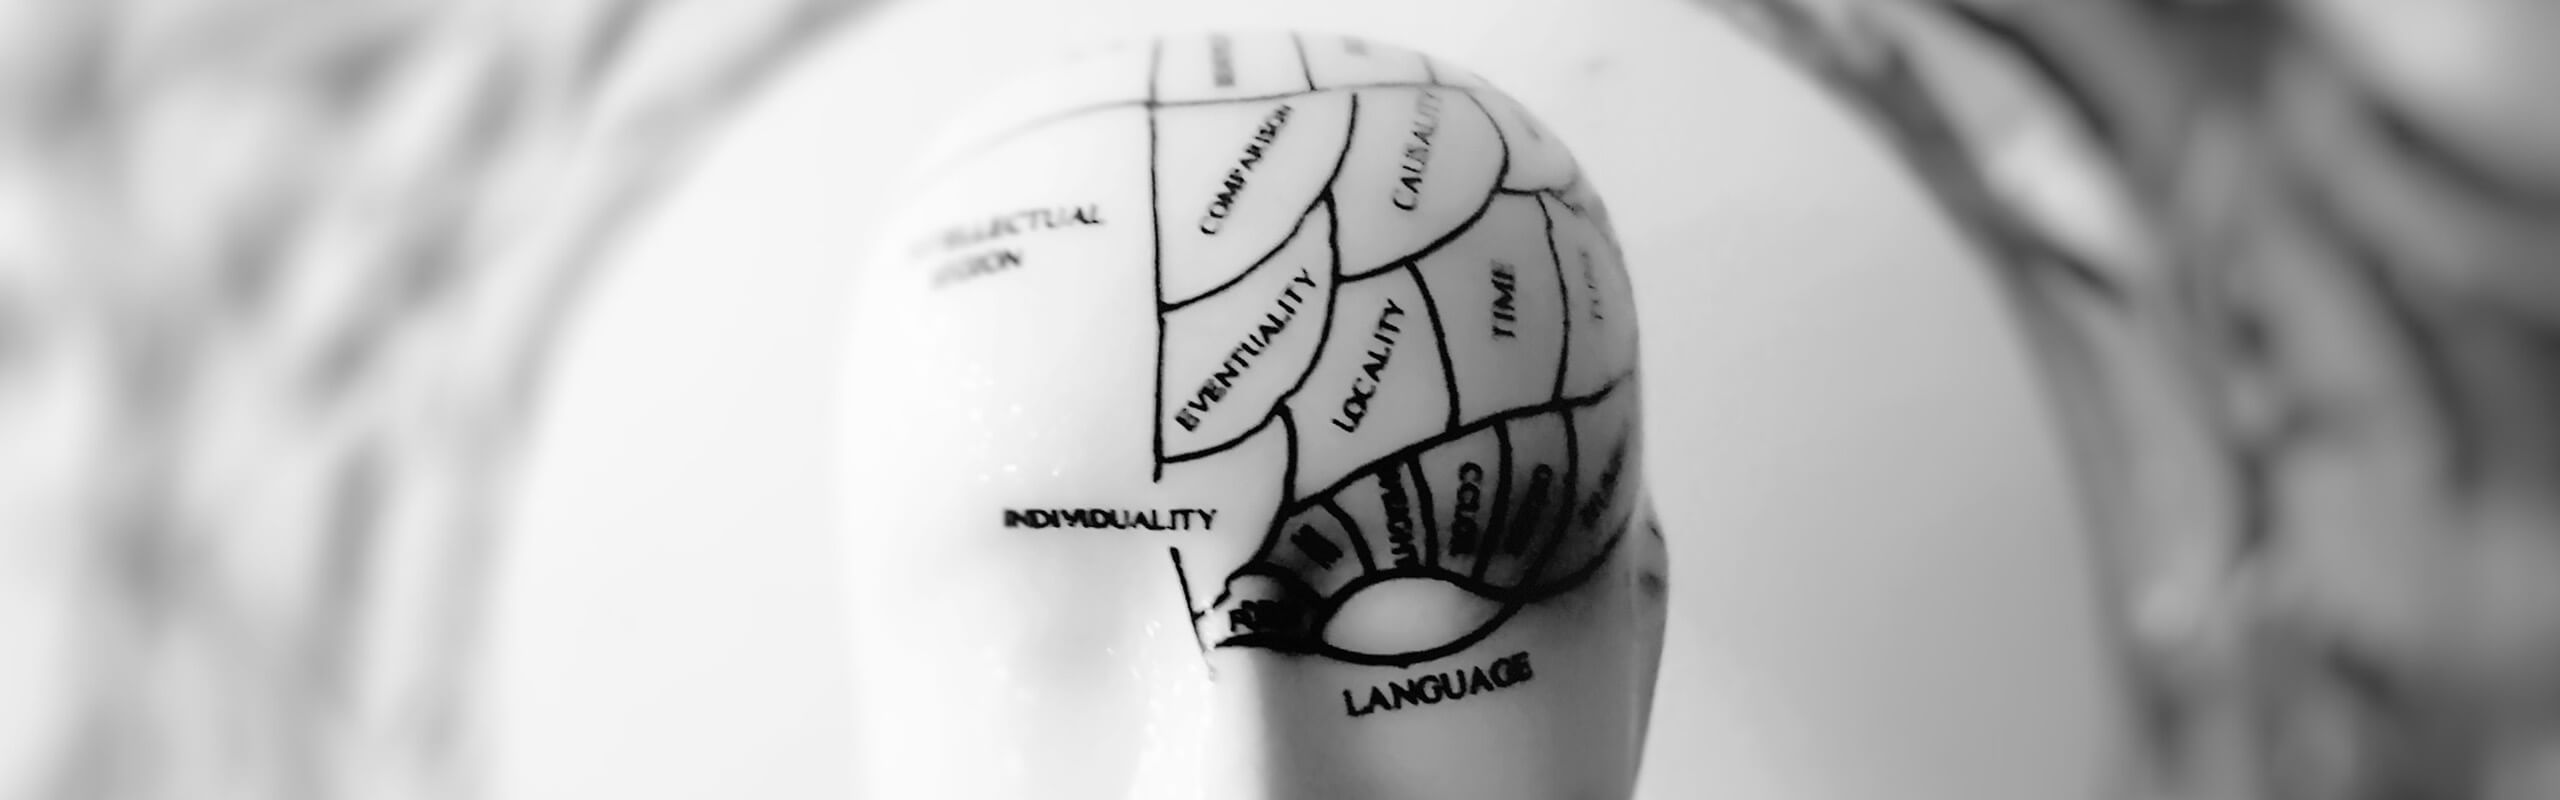 an old-fashioned pottery head showing areas of the brain